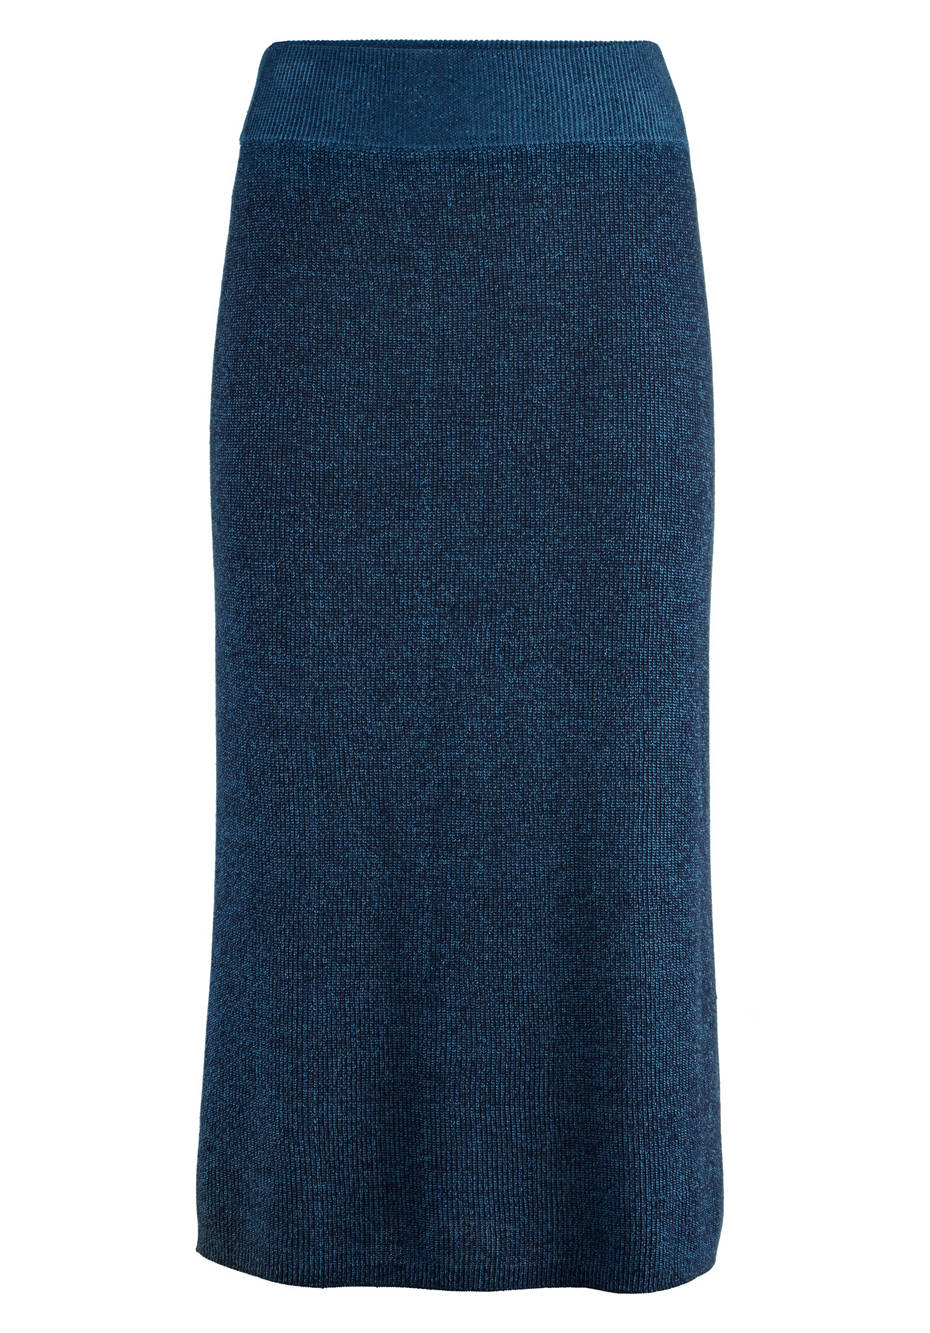 Knitted skirt organic cotton and linen